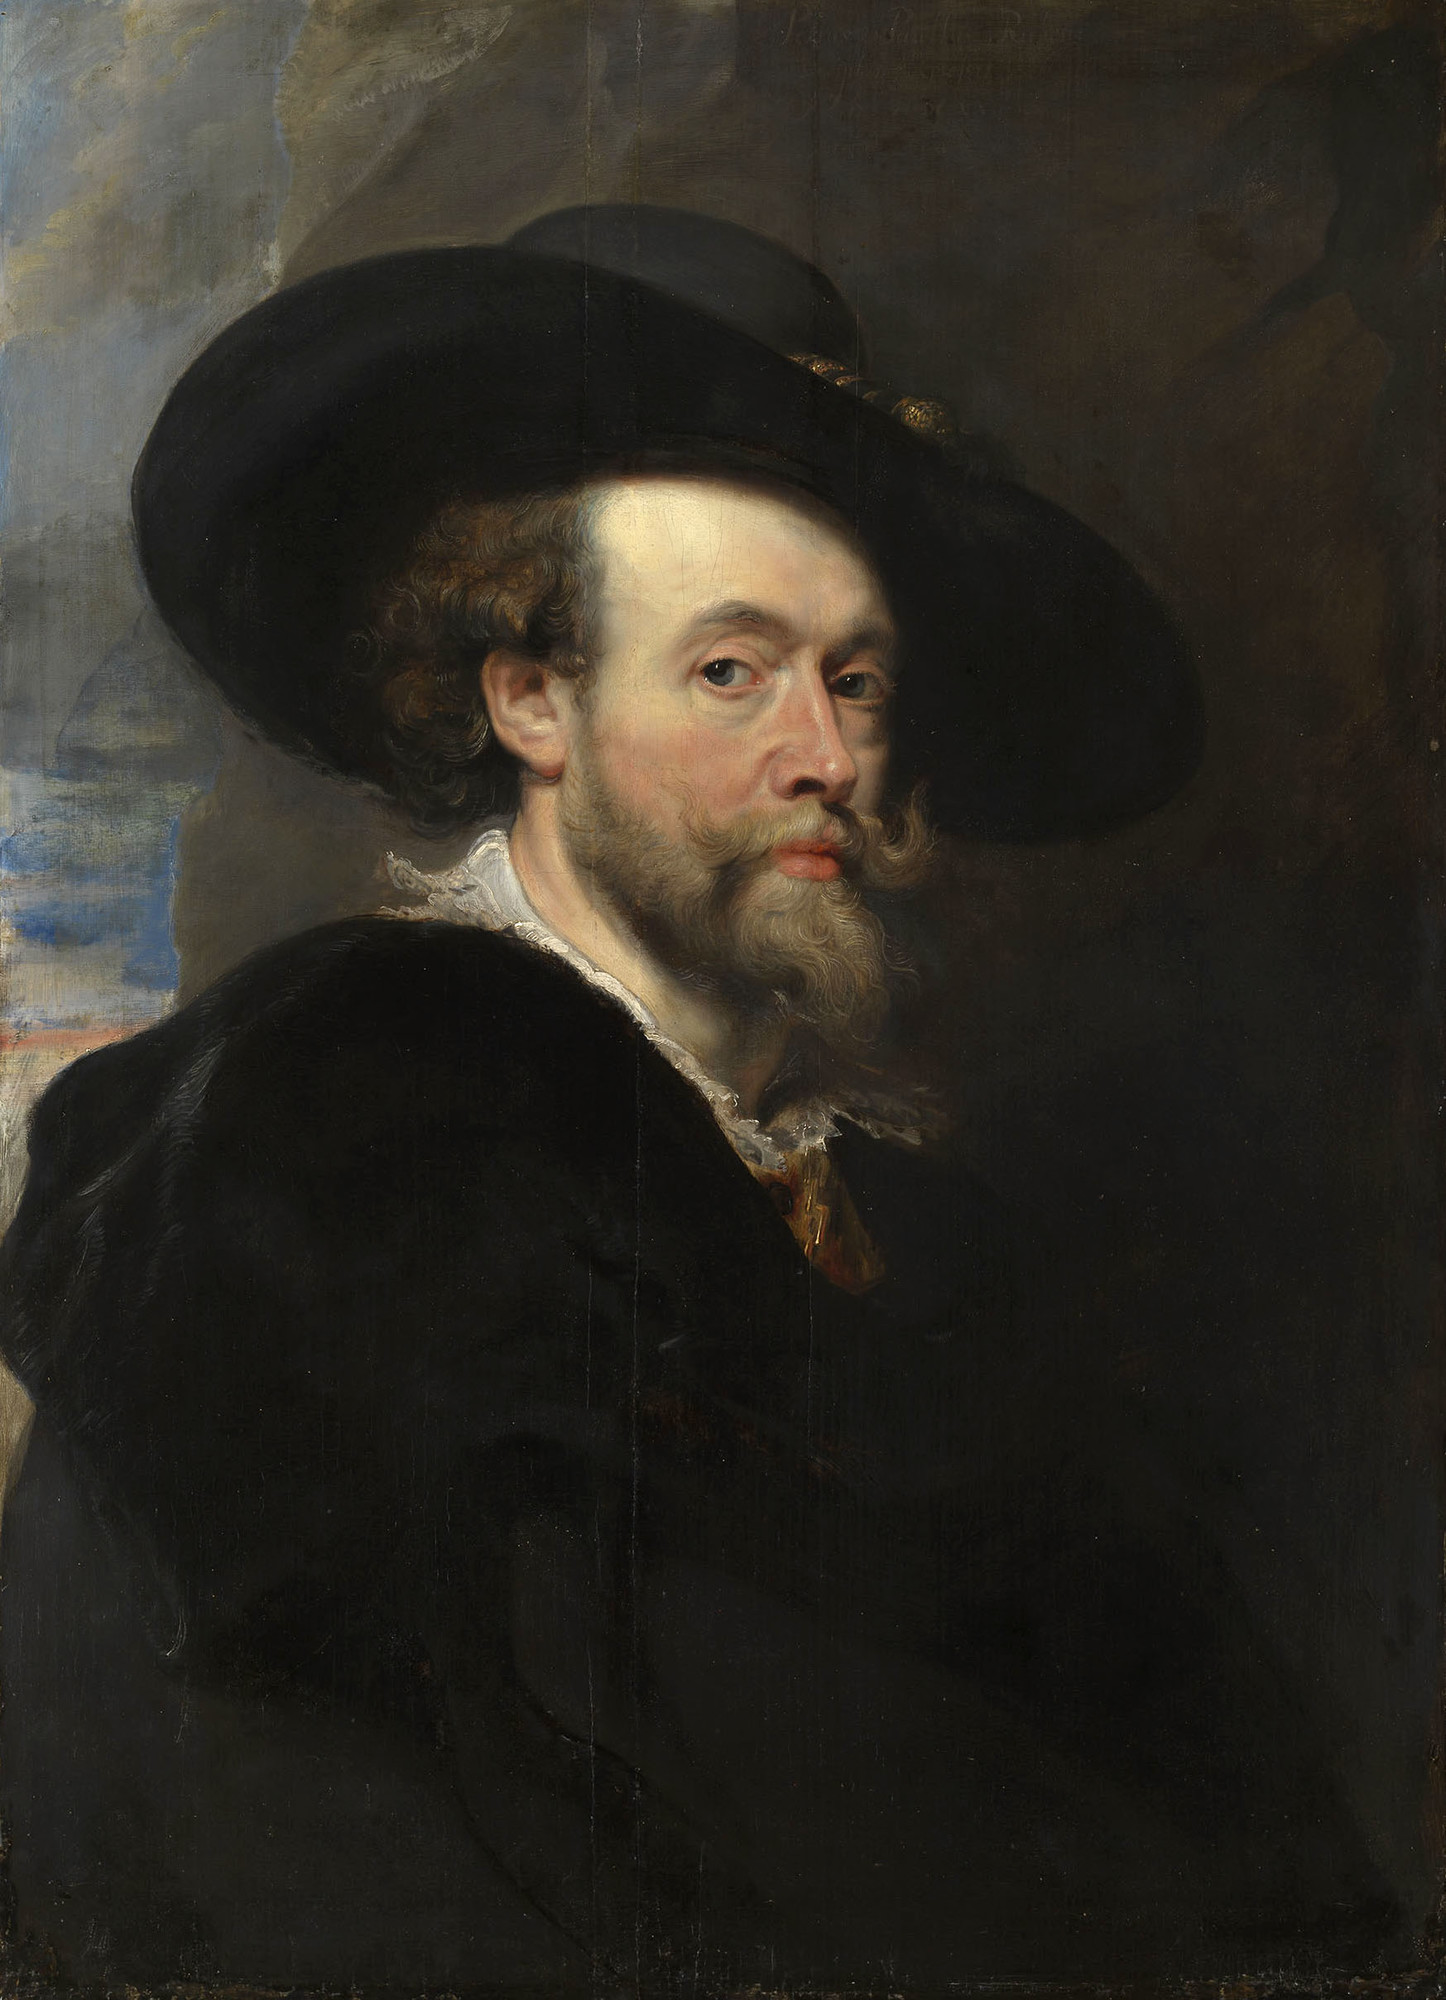 Rubens_self_portrait.jpg